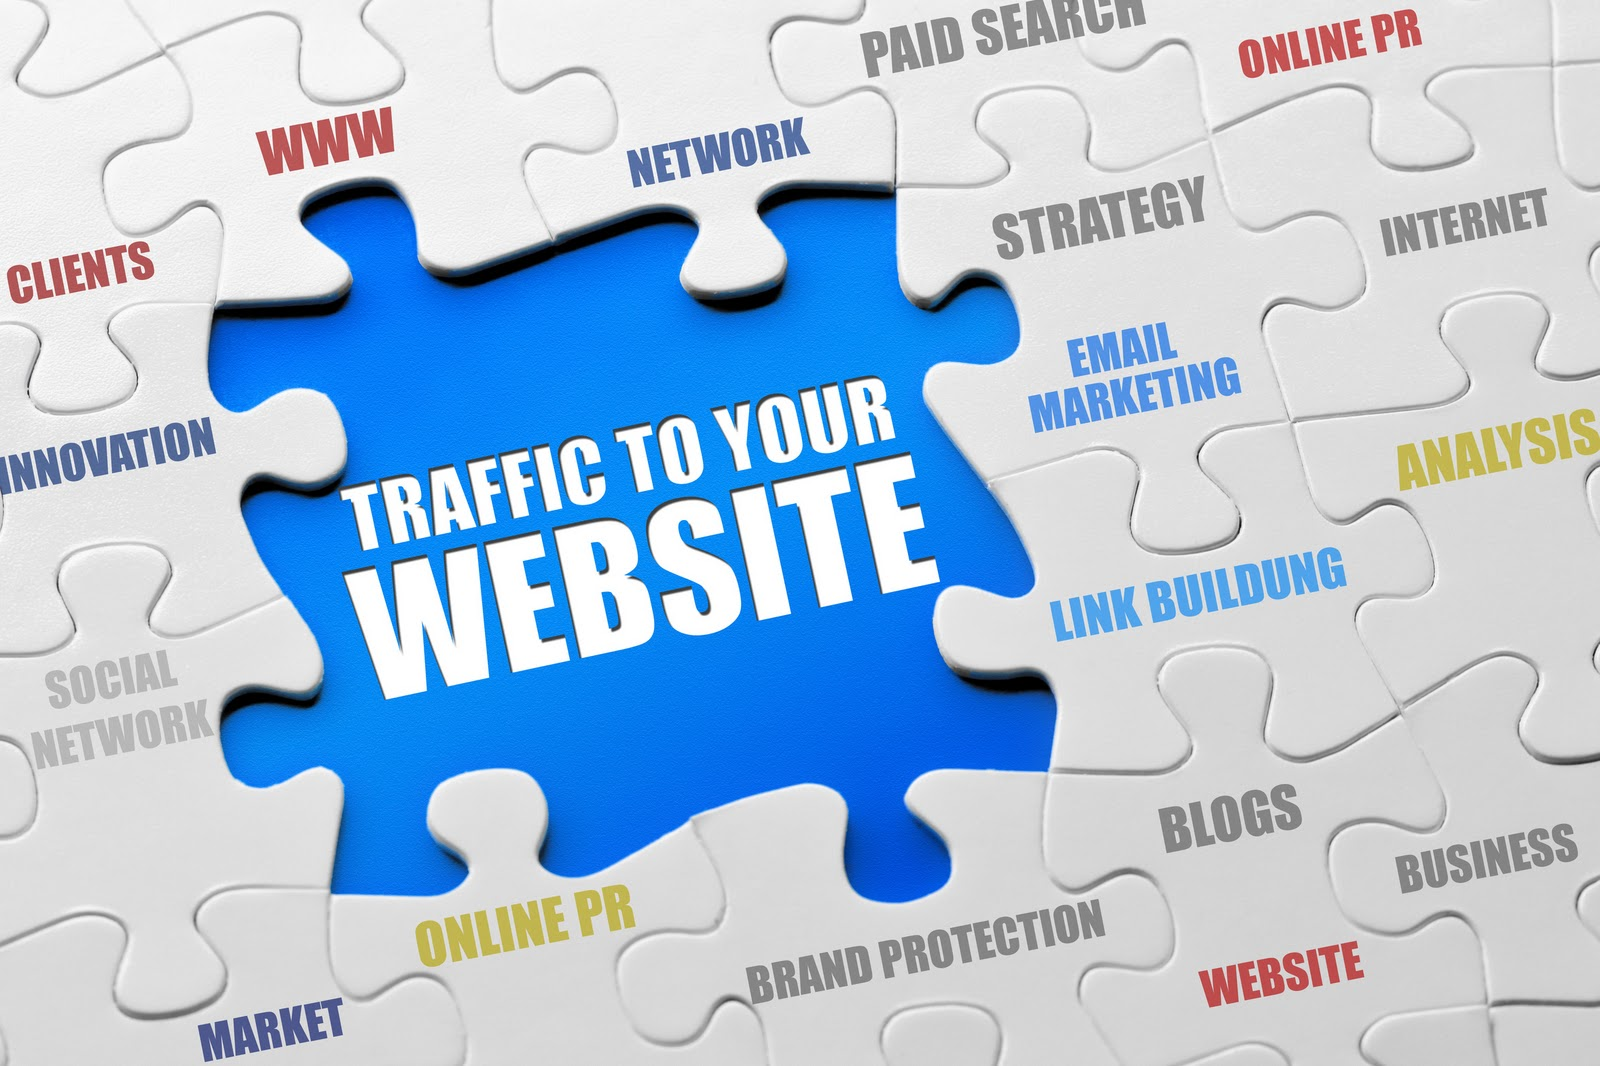 traffic+to+your+website Ways To Get Traffic To Your Website